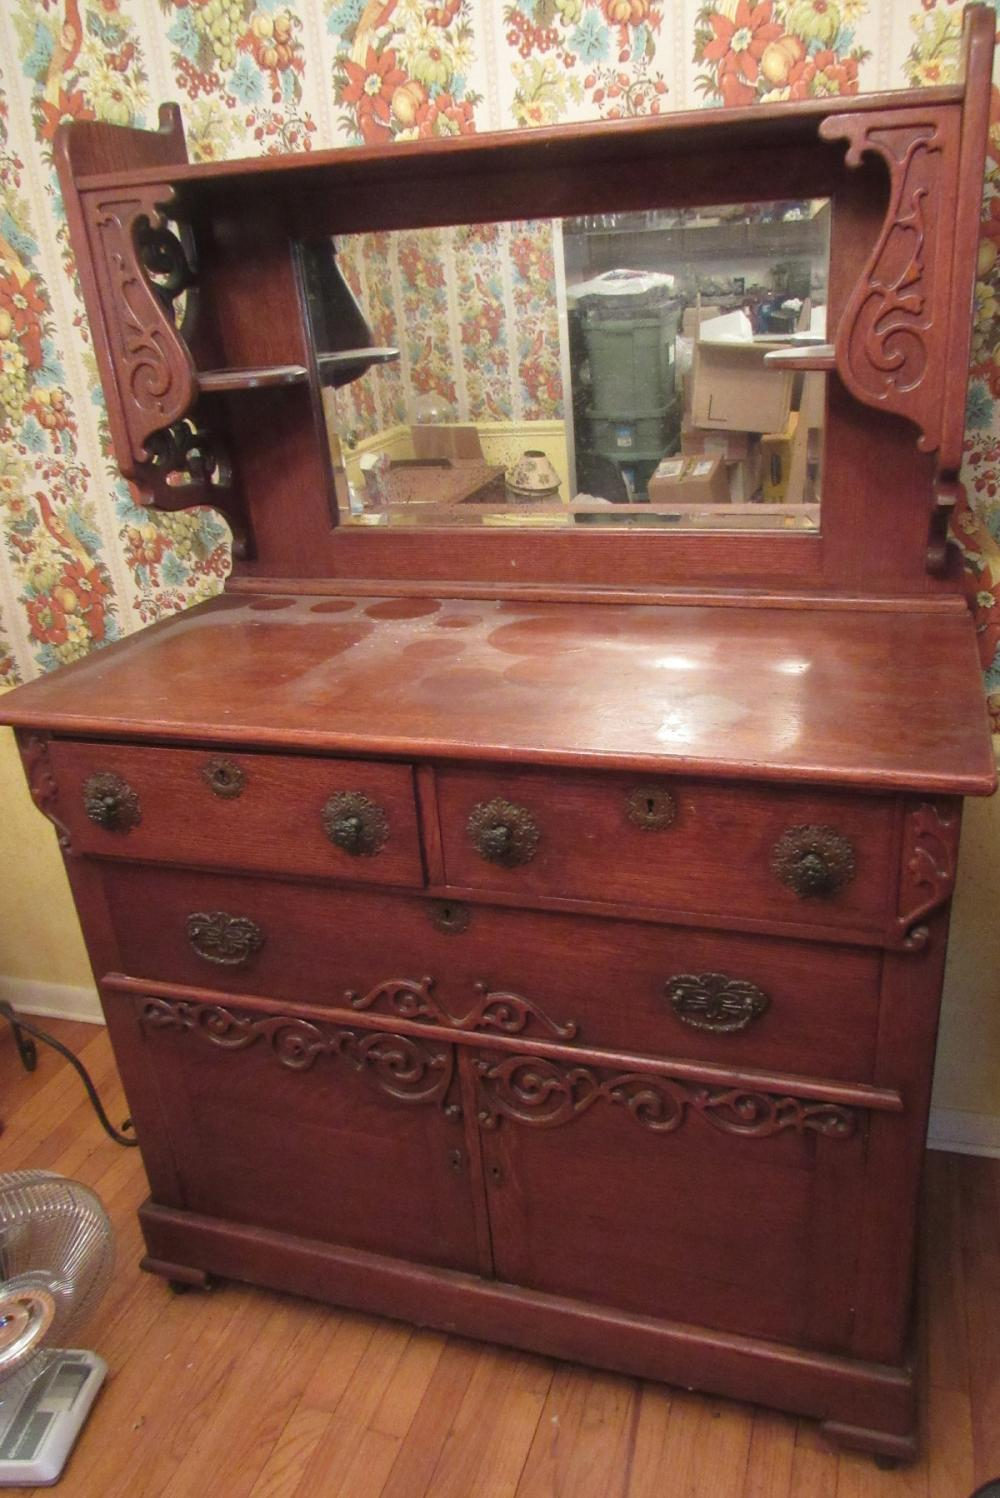 Antique oak sideboard buffet with carved details, All Responsibility for Shipping will be the Successful Bidder. You must arrange for pickup directly or by a shipper within 7 days after sale.